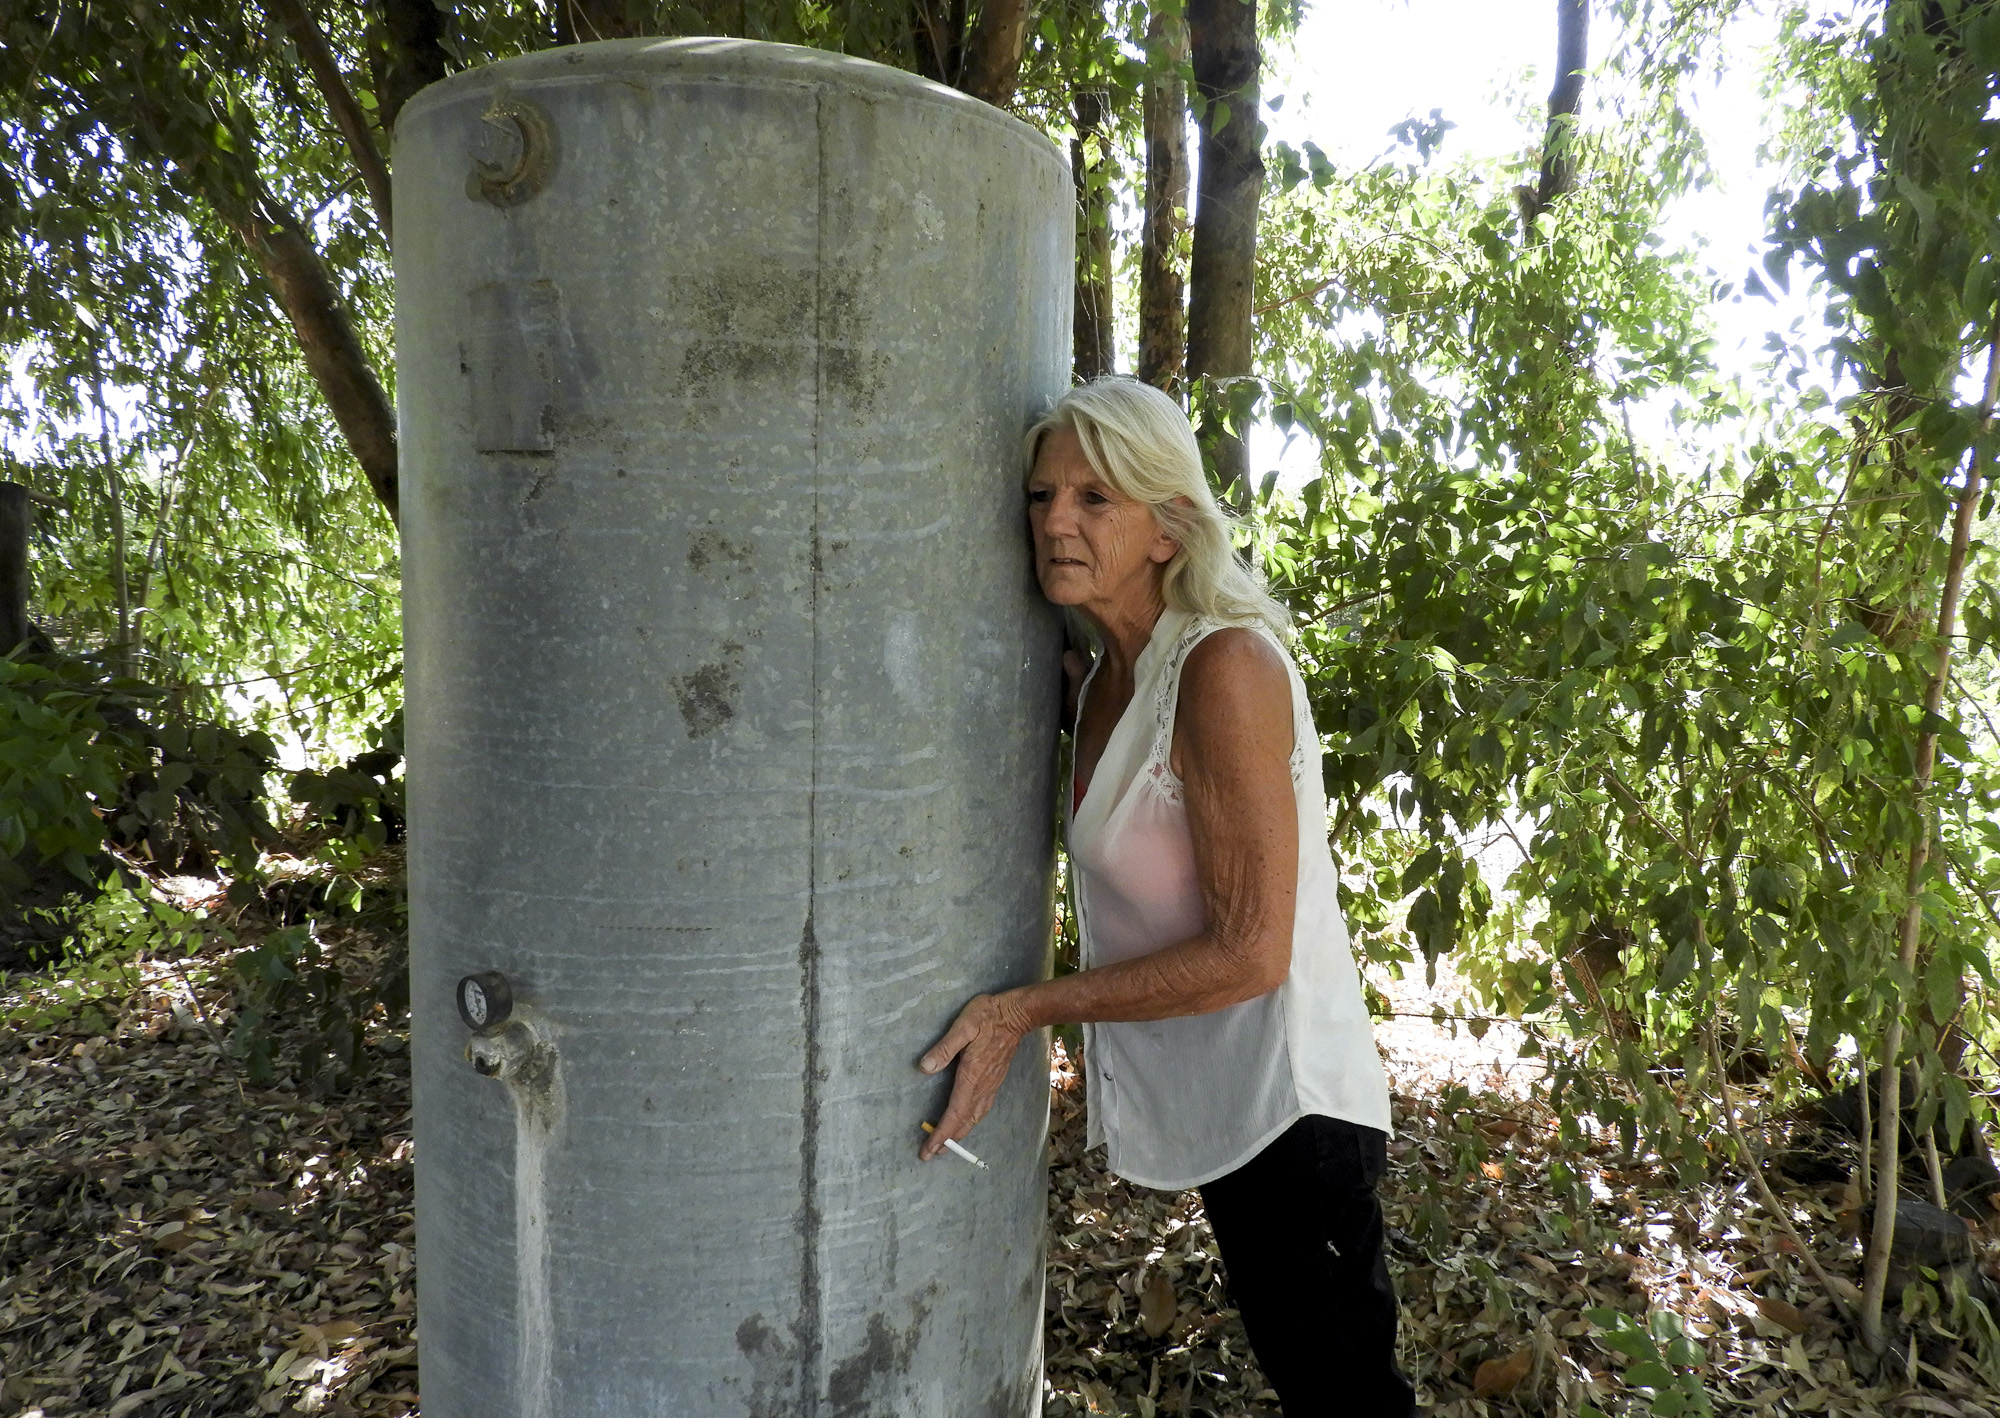 California enacted a groundwater law 7 years ago. But wells are still drying up ? and the threat is spreading